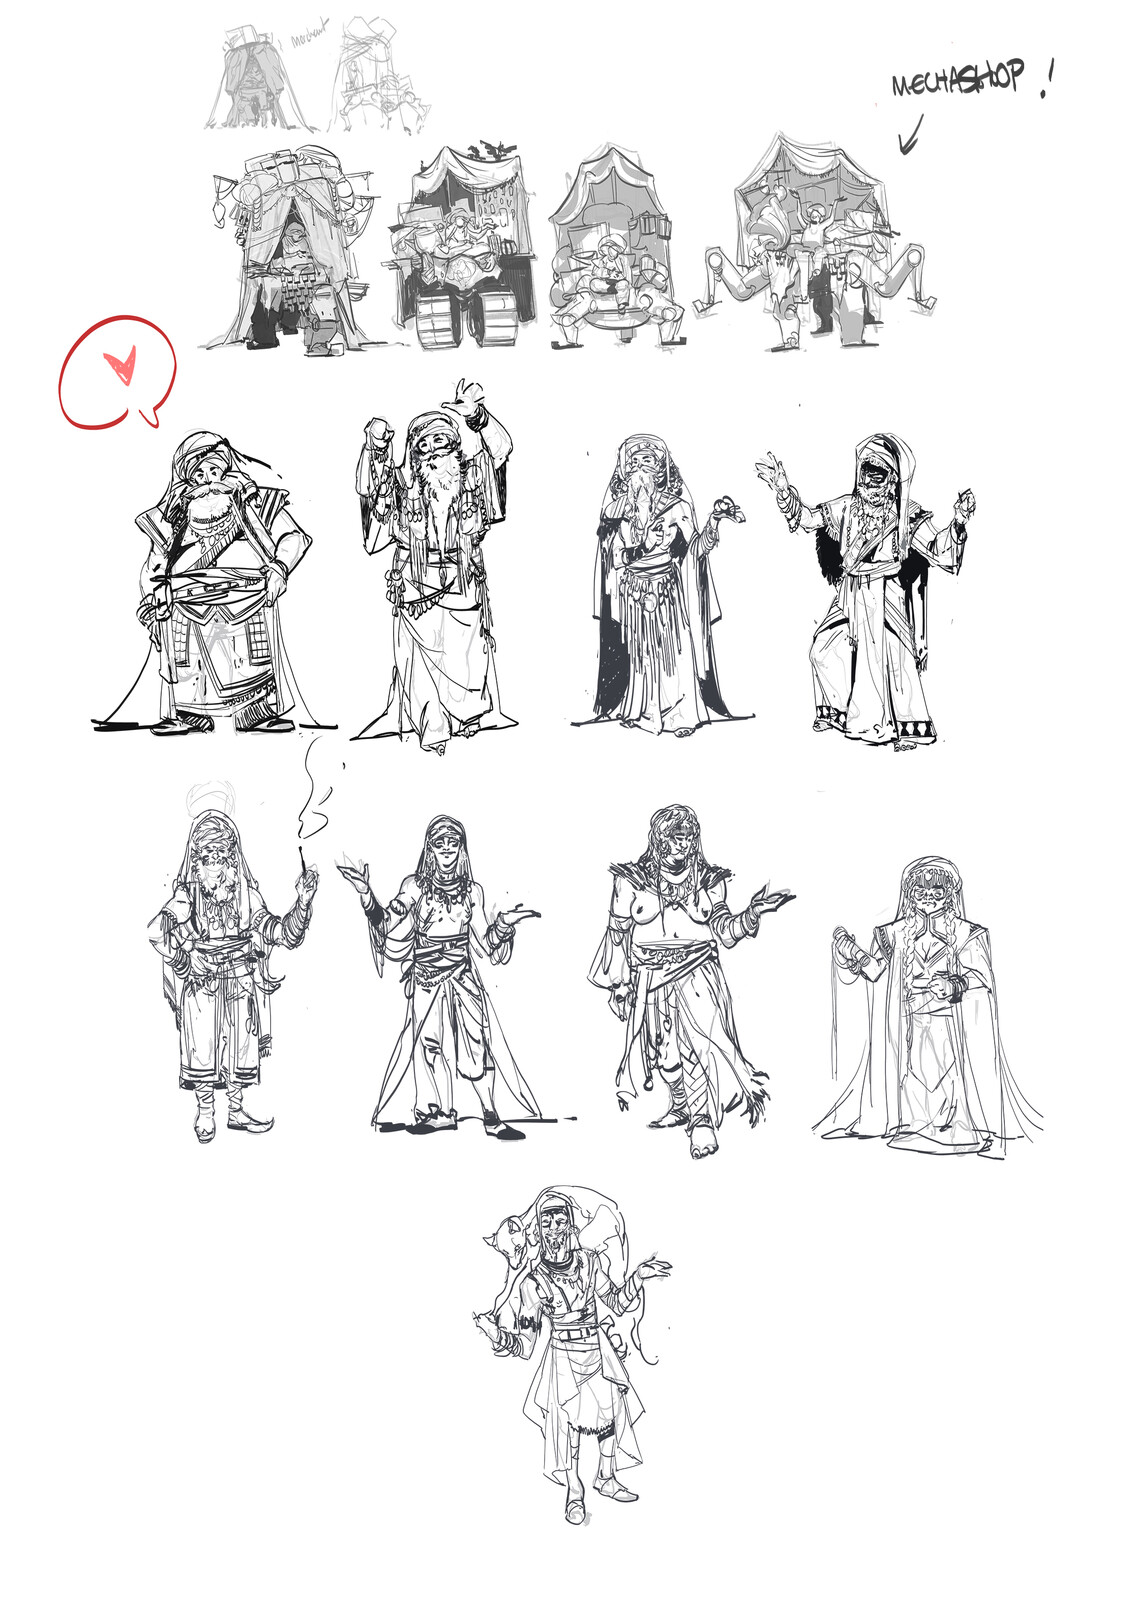 Some of the previous sketches.